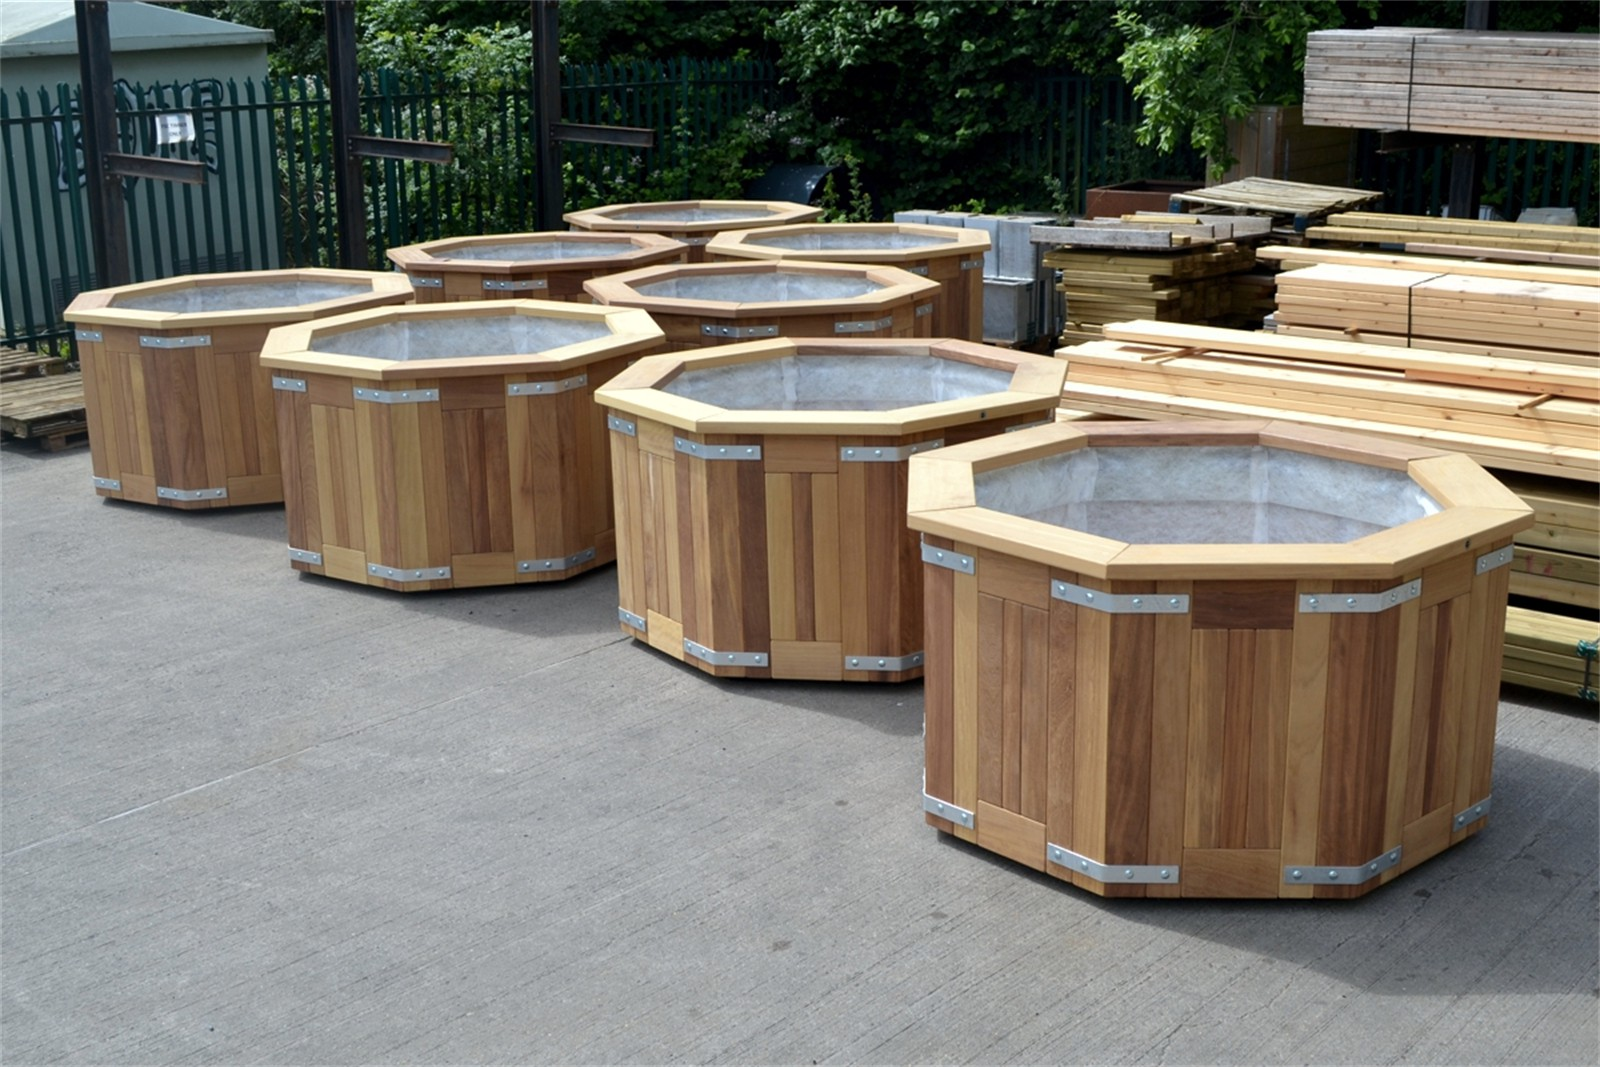 c126j07 - Completed hardwood planters